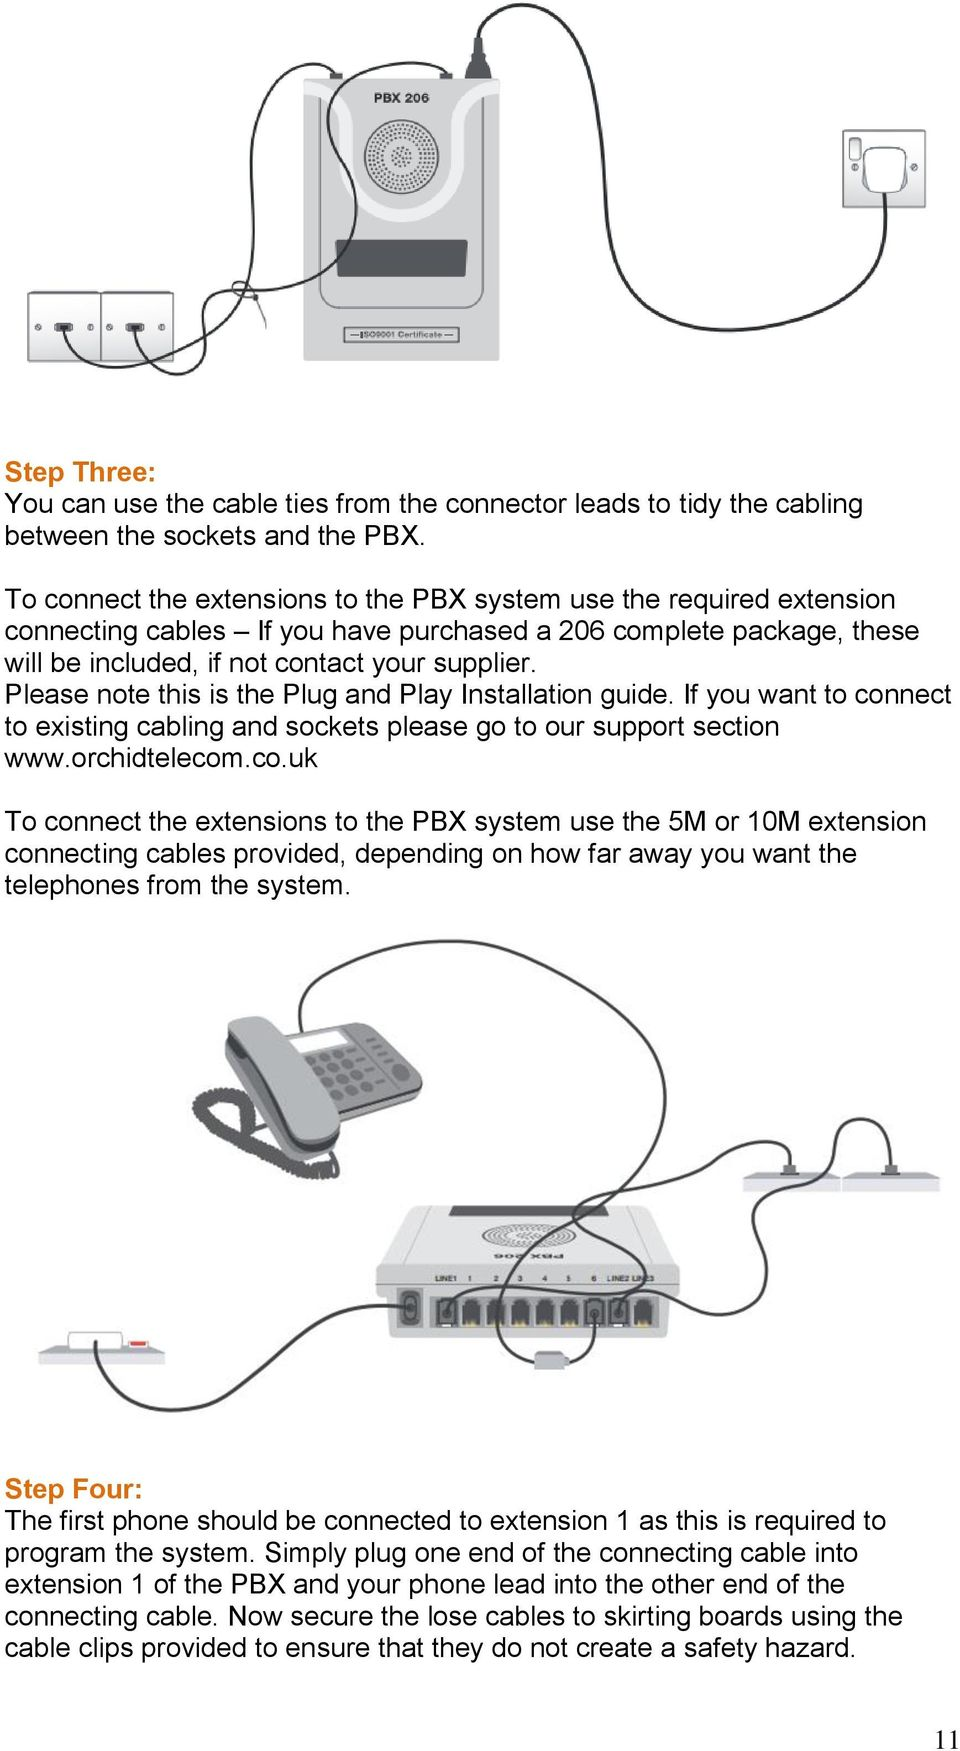 Please note this is the Plug and Play Installation guide. If you want to con